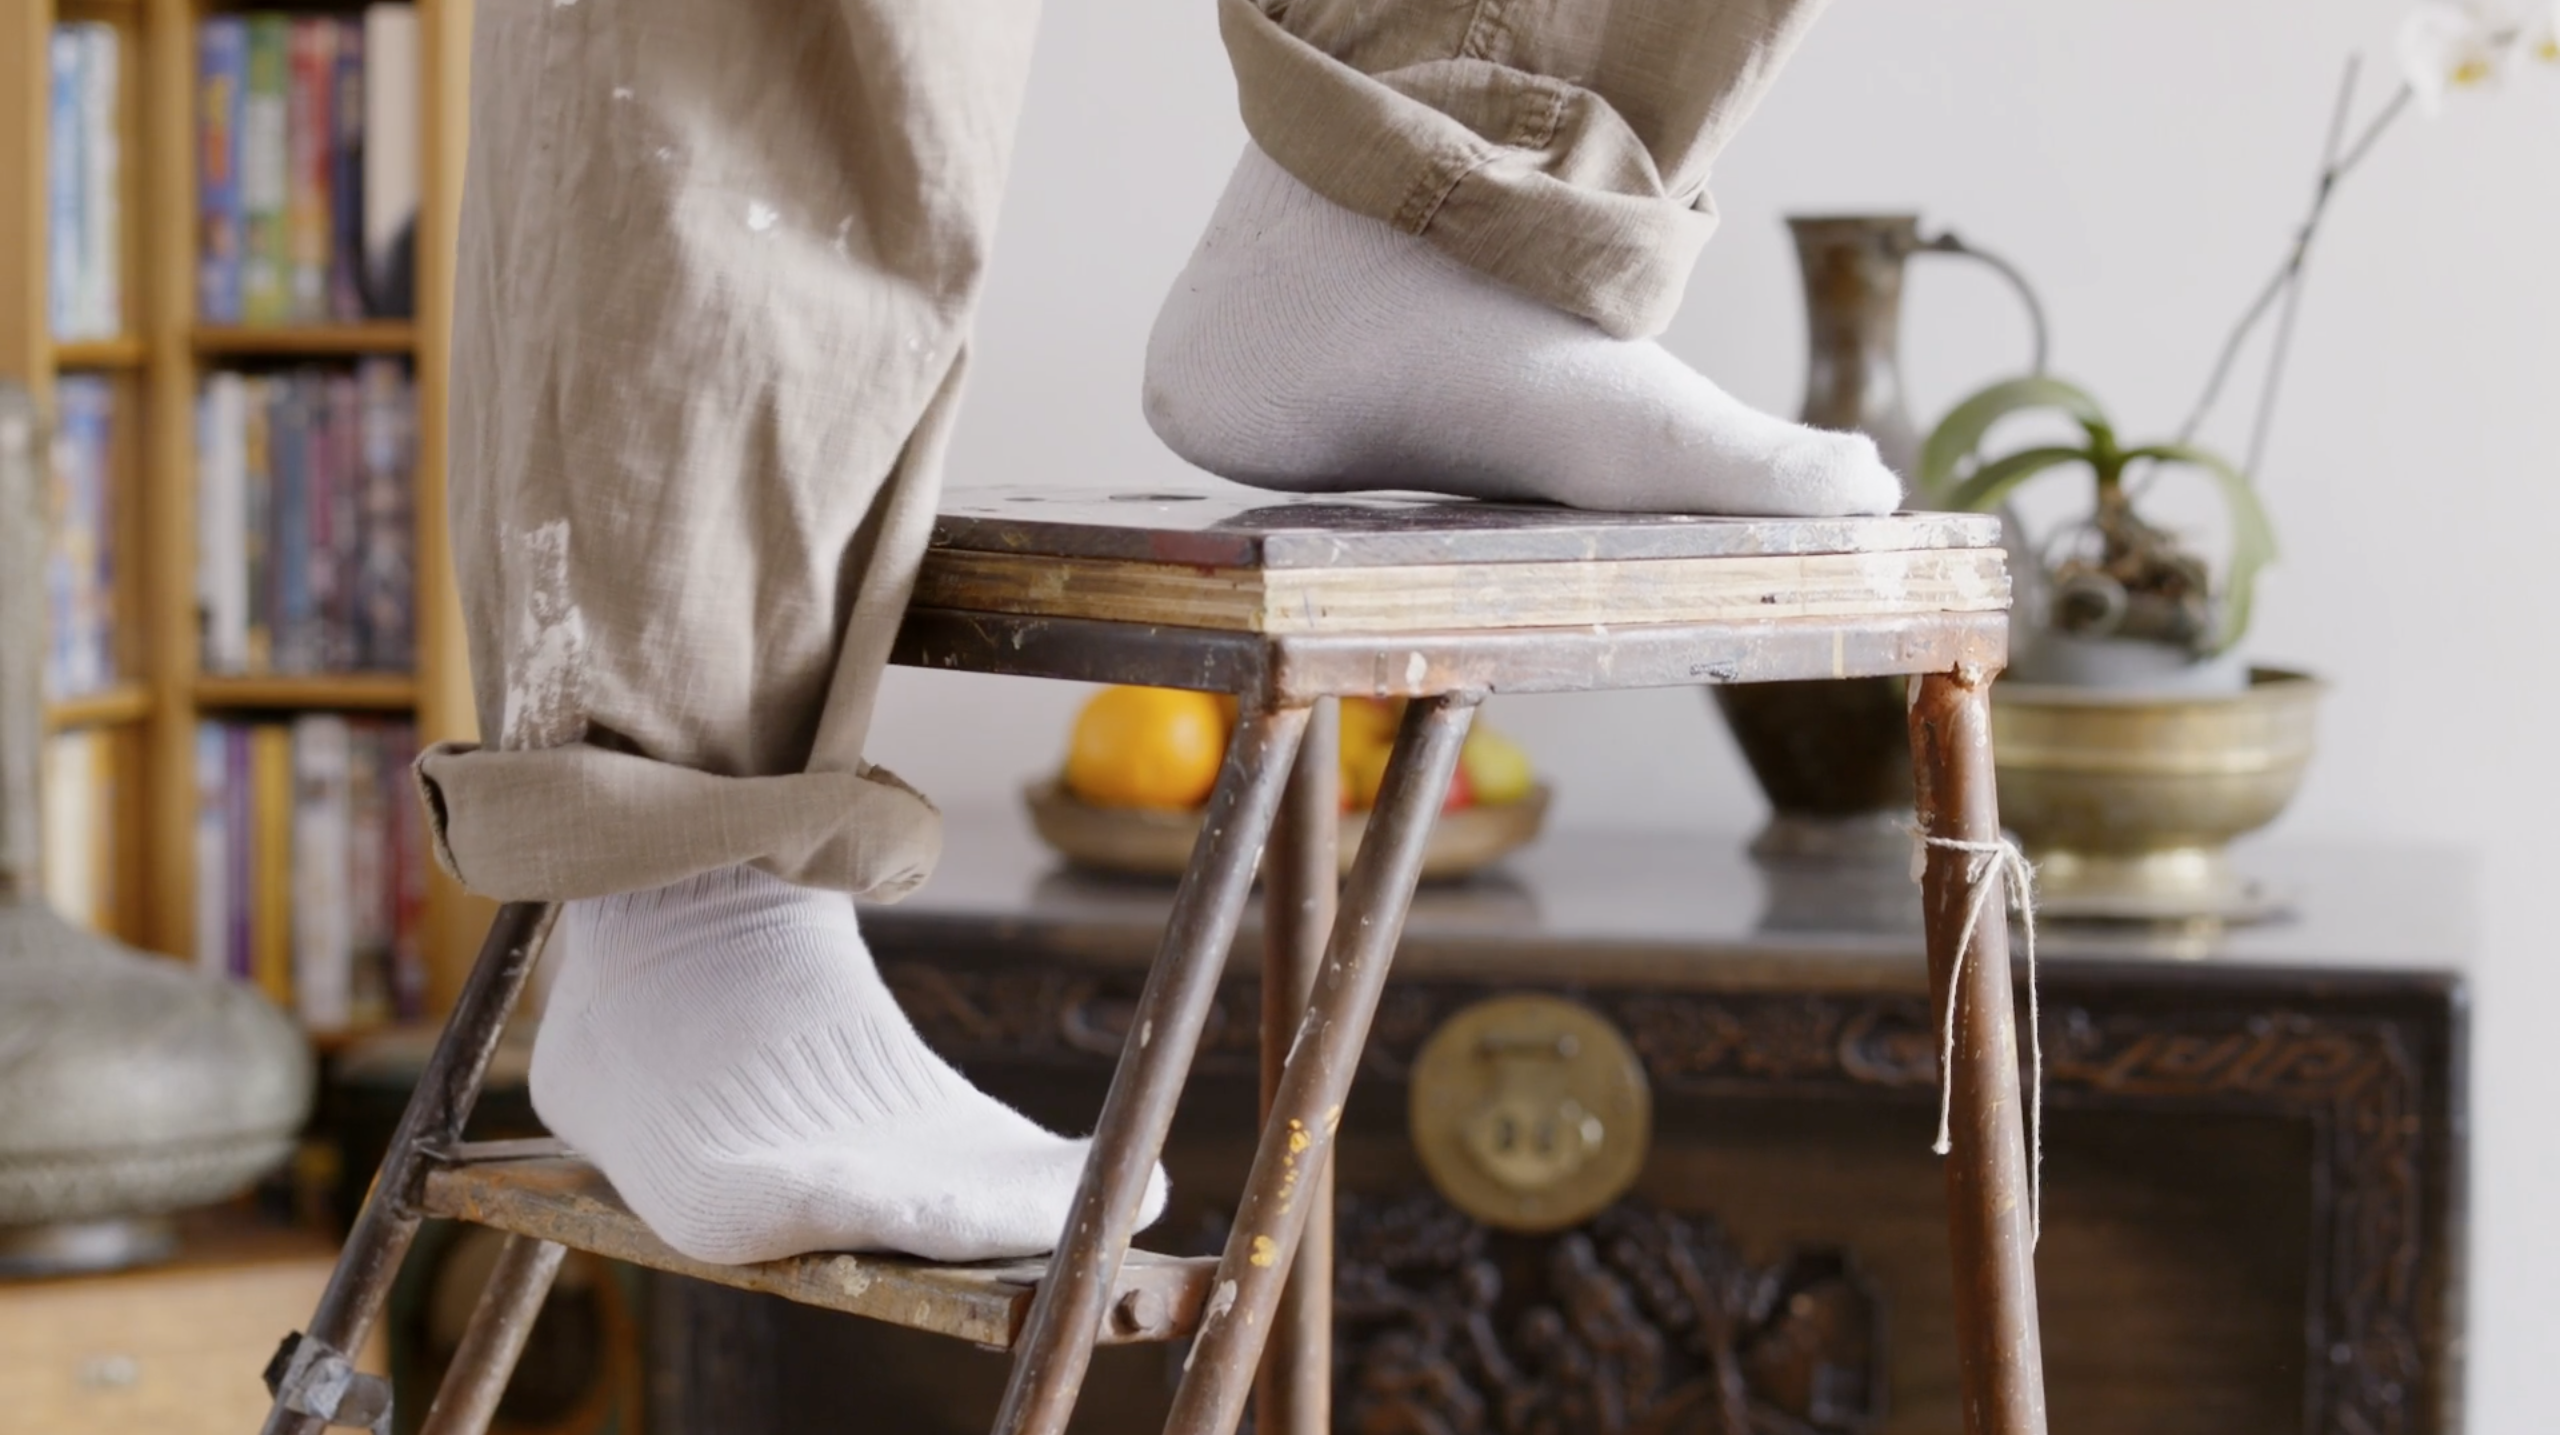 Still from the commercial Papa. It's a close up of feet on a stepladder.